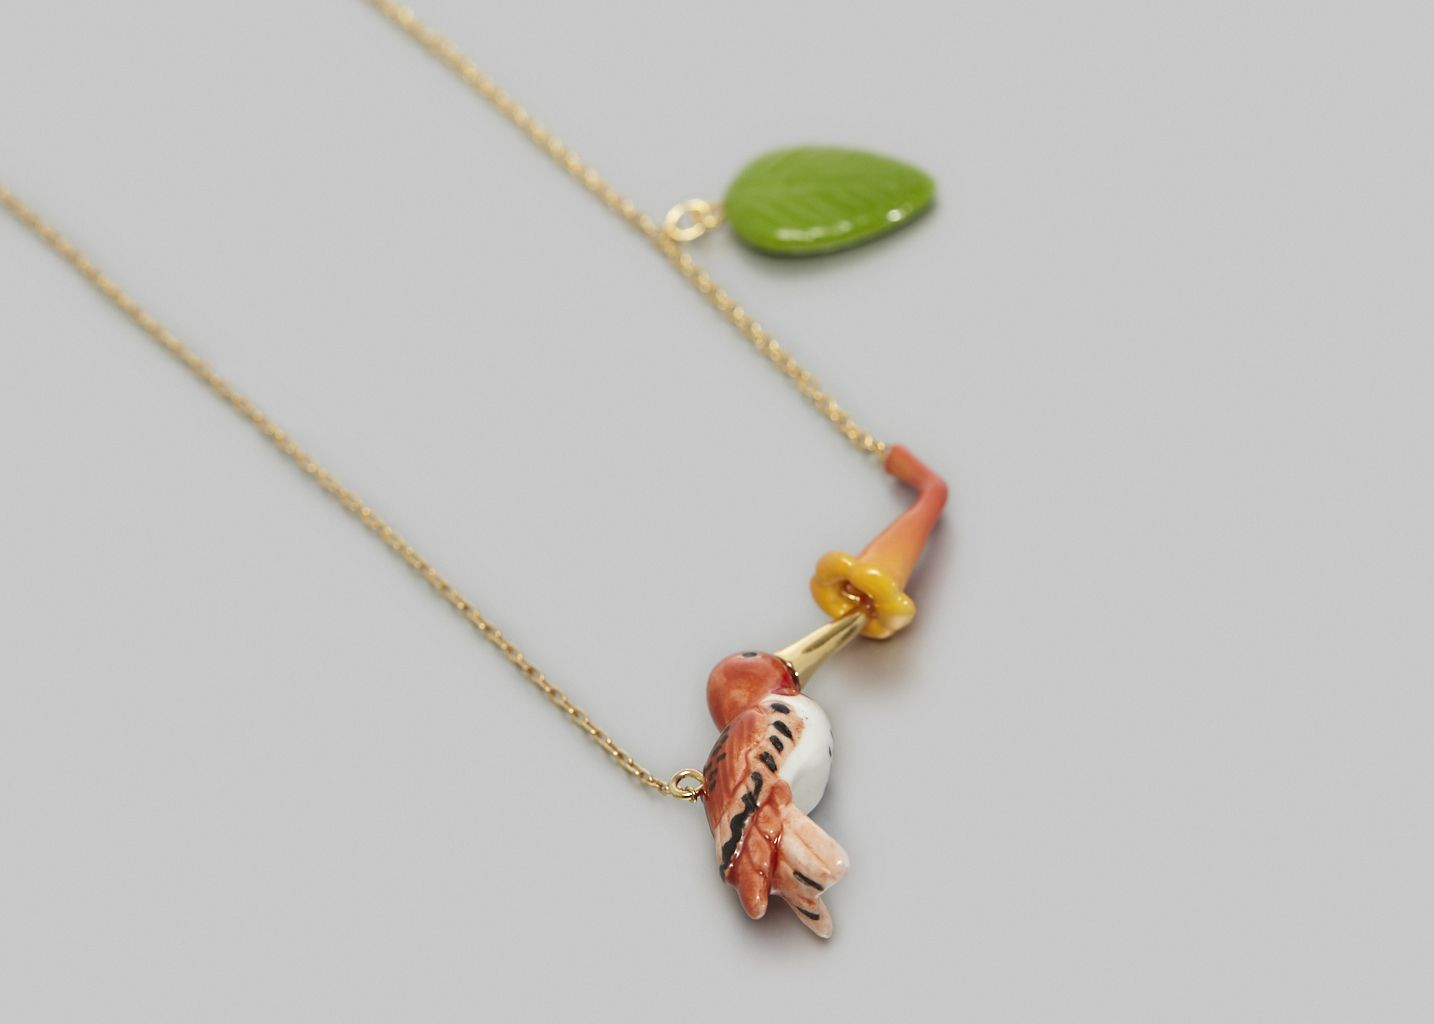 Hummingbird Necklace - Nach